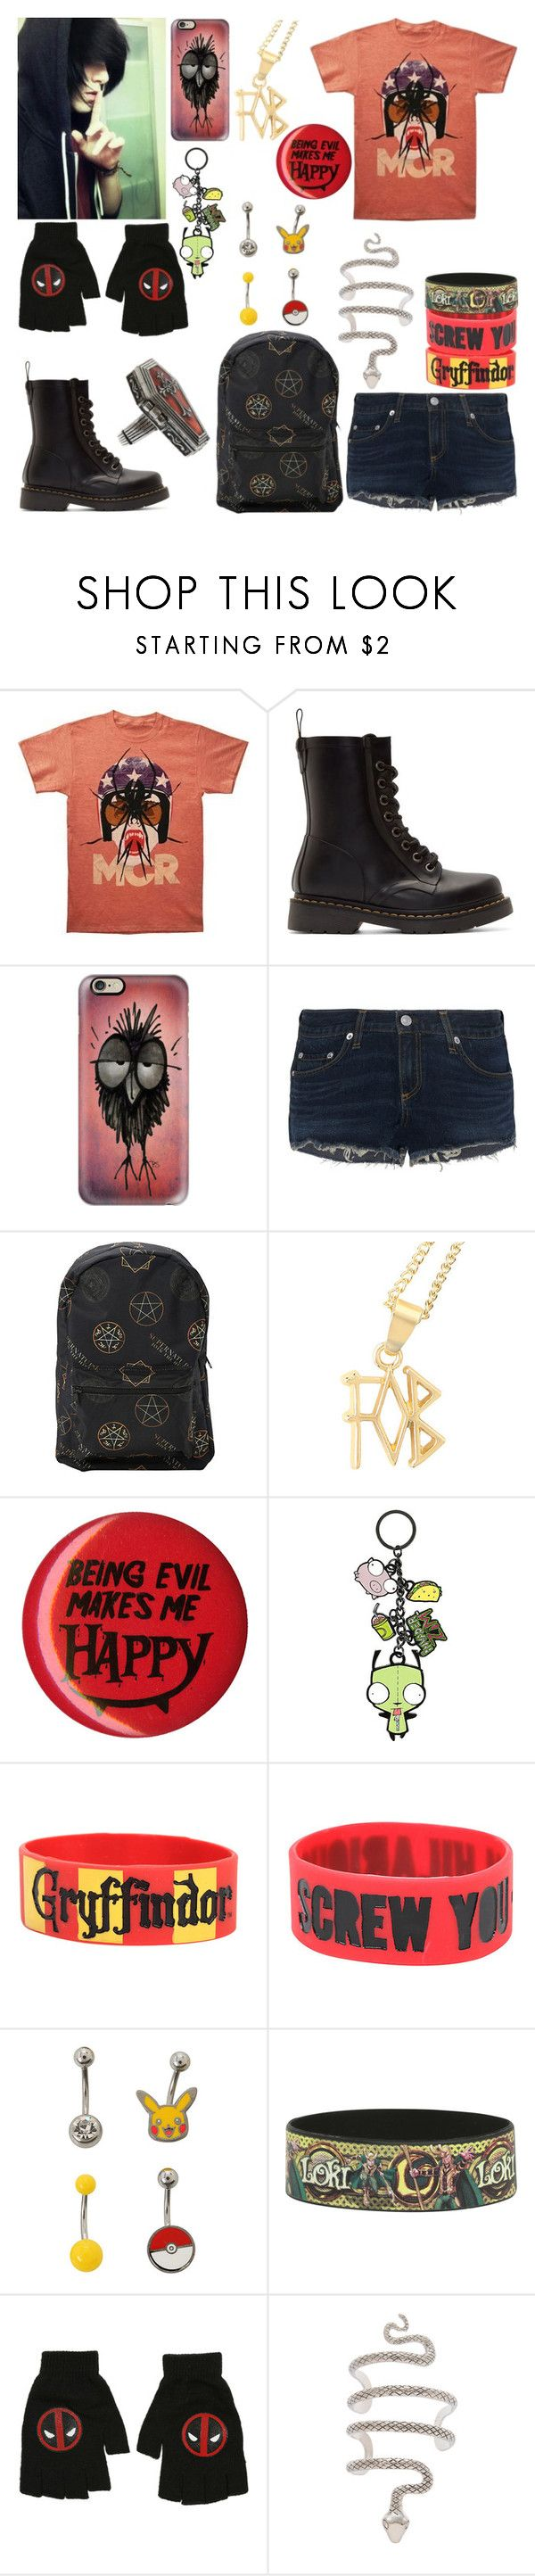 """I need to pee"" by frerardforever ❤ liked on Polyvore featuring Dr. Martens, Casetify and rag & bone"